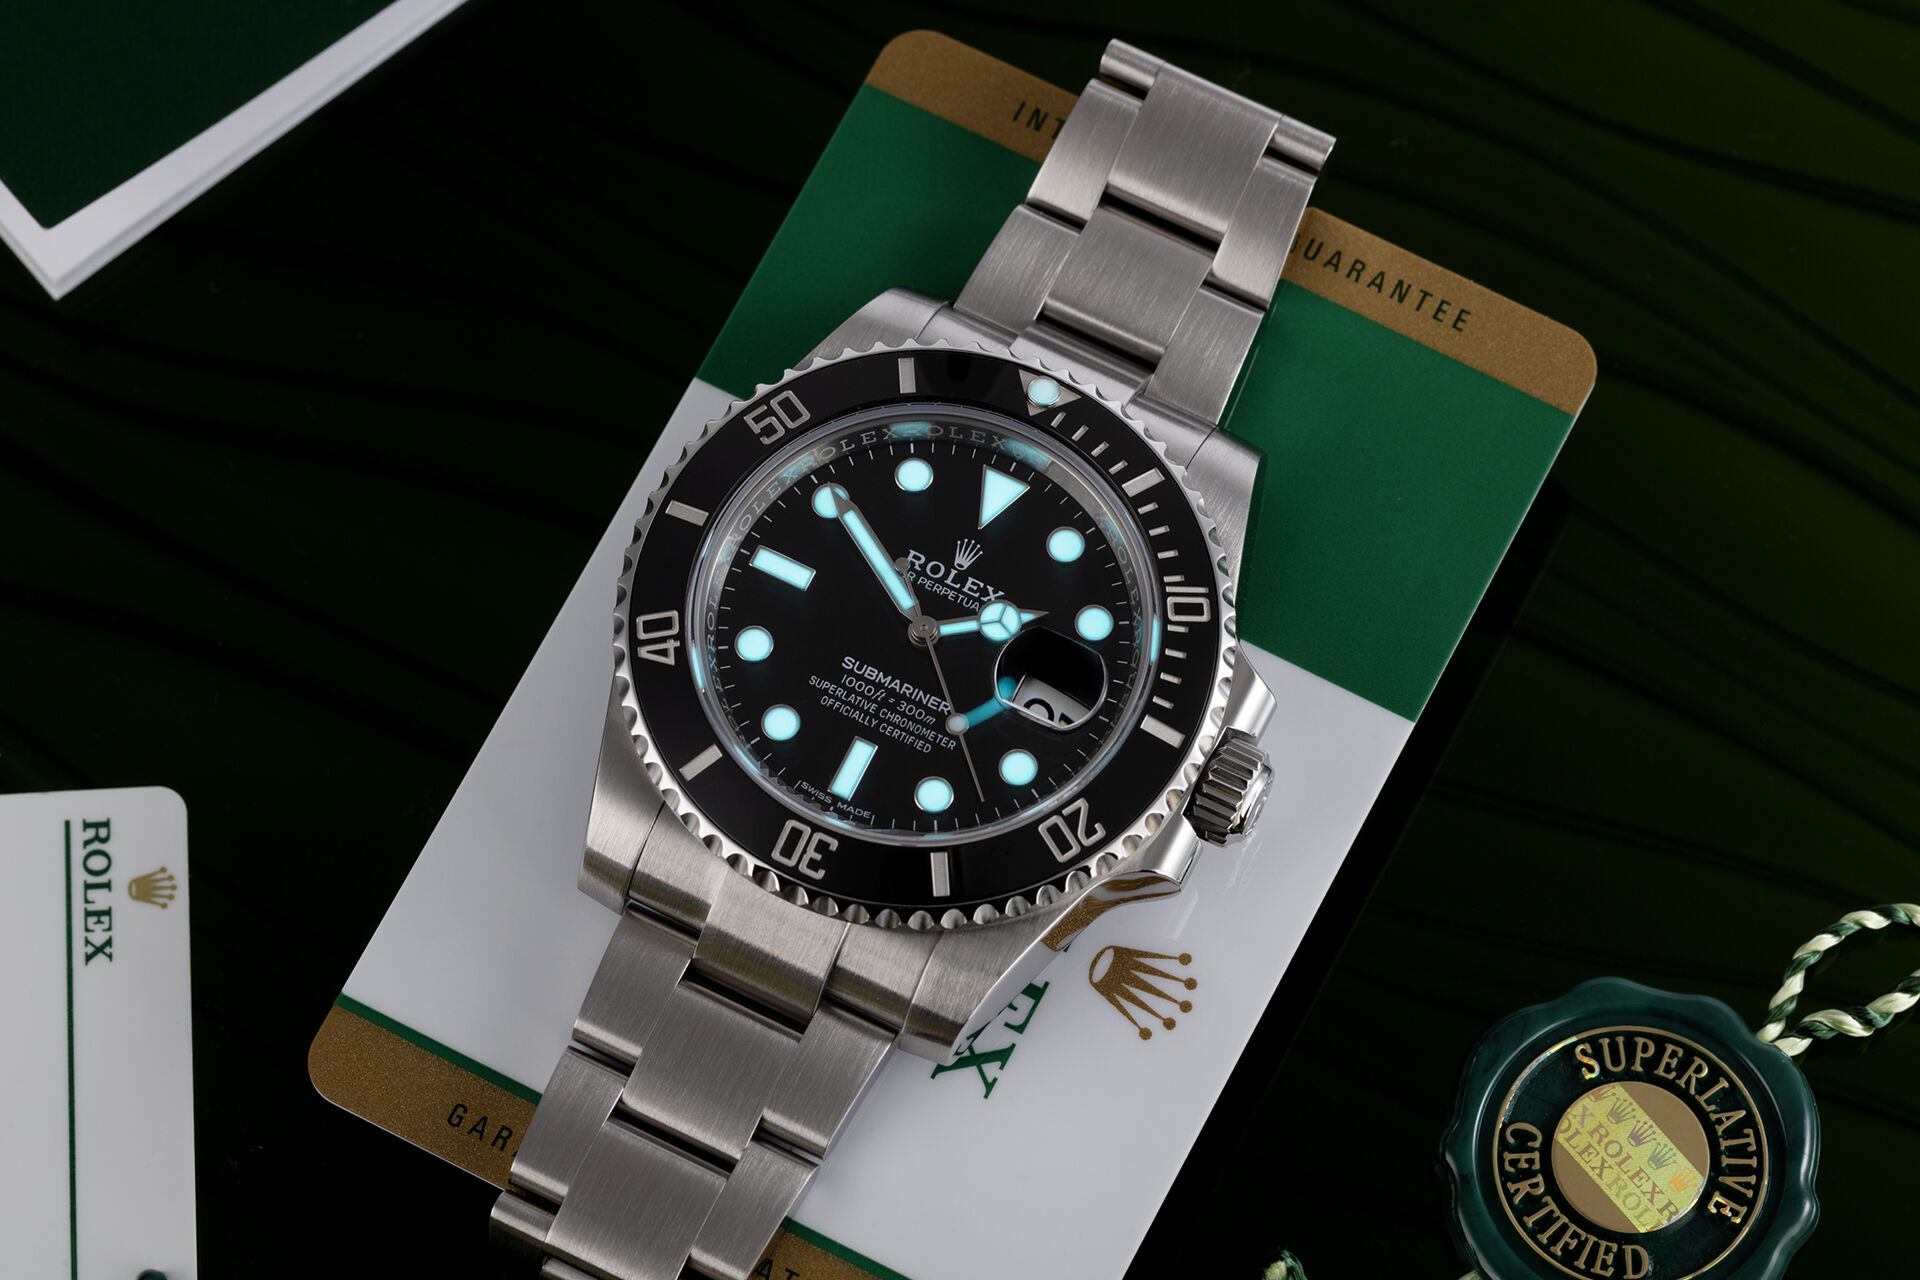 ref 116610LN | Discontinued - UK Purchased | Rolex Submariner Date